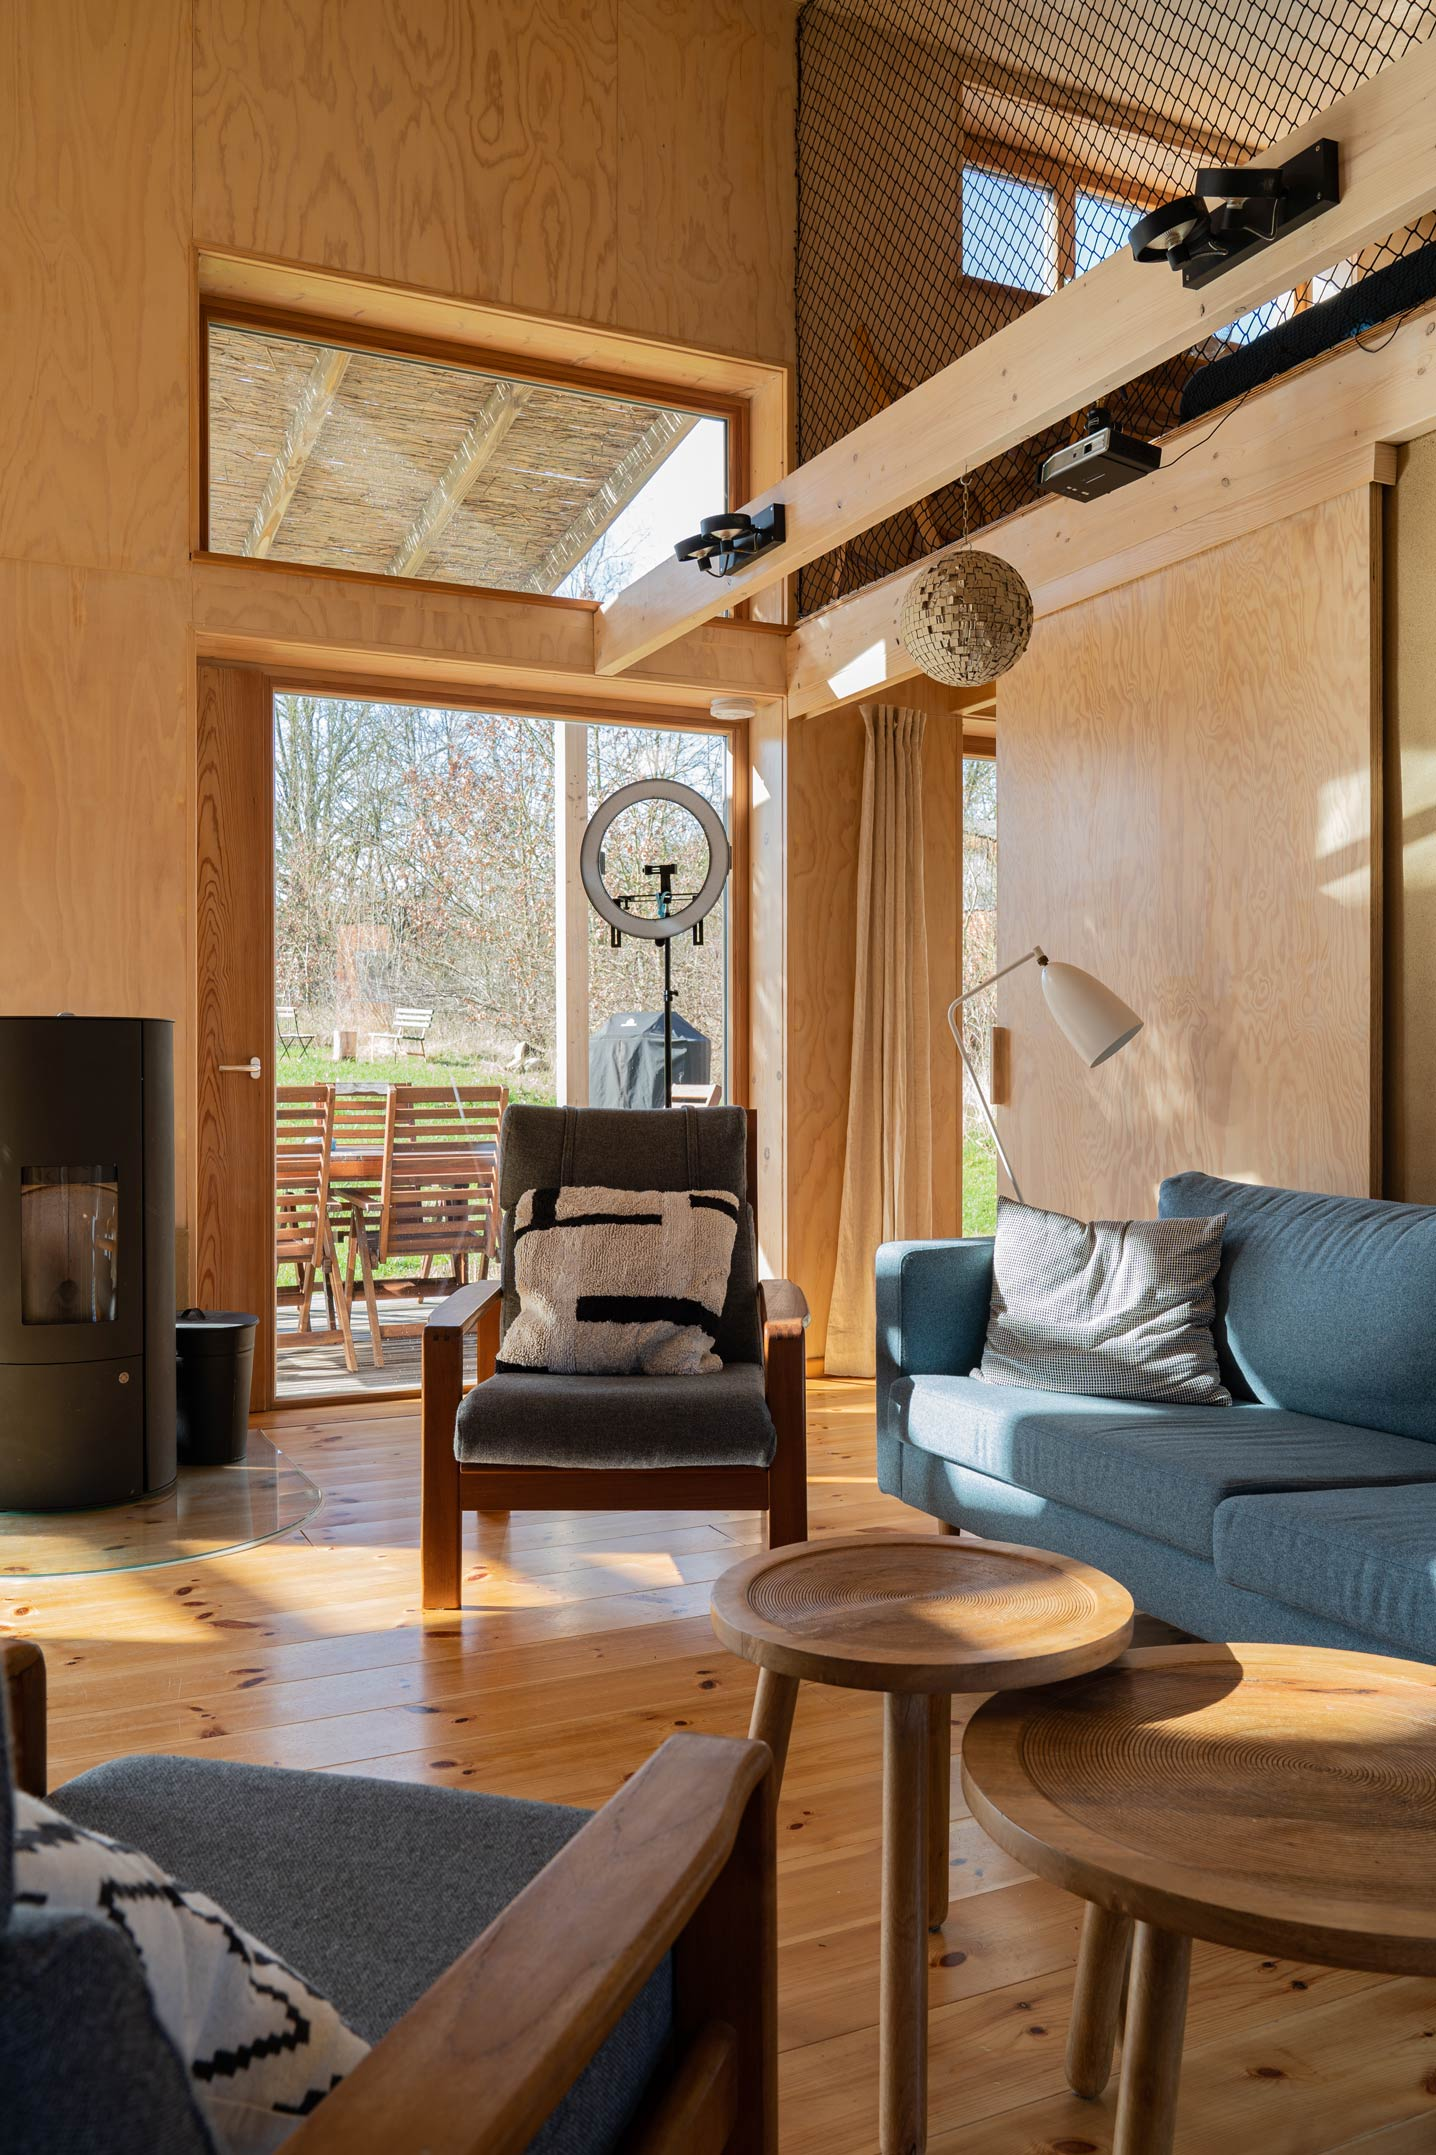 Interior details of eco friendly wooden cabin